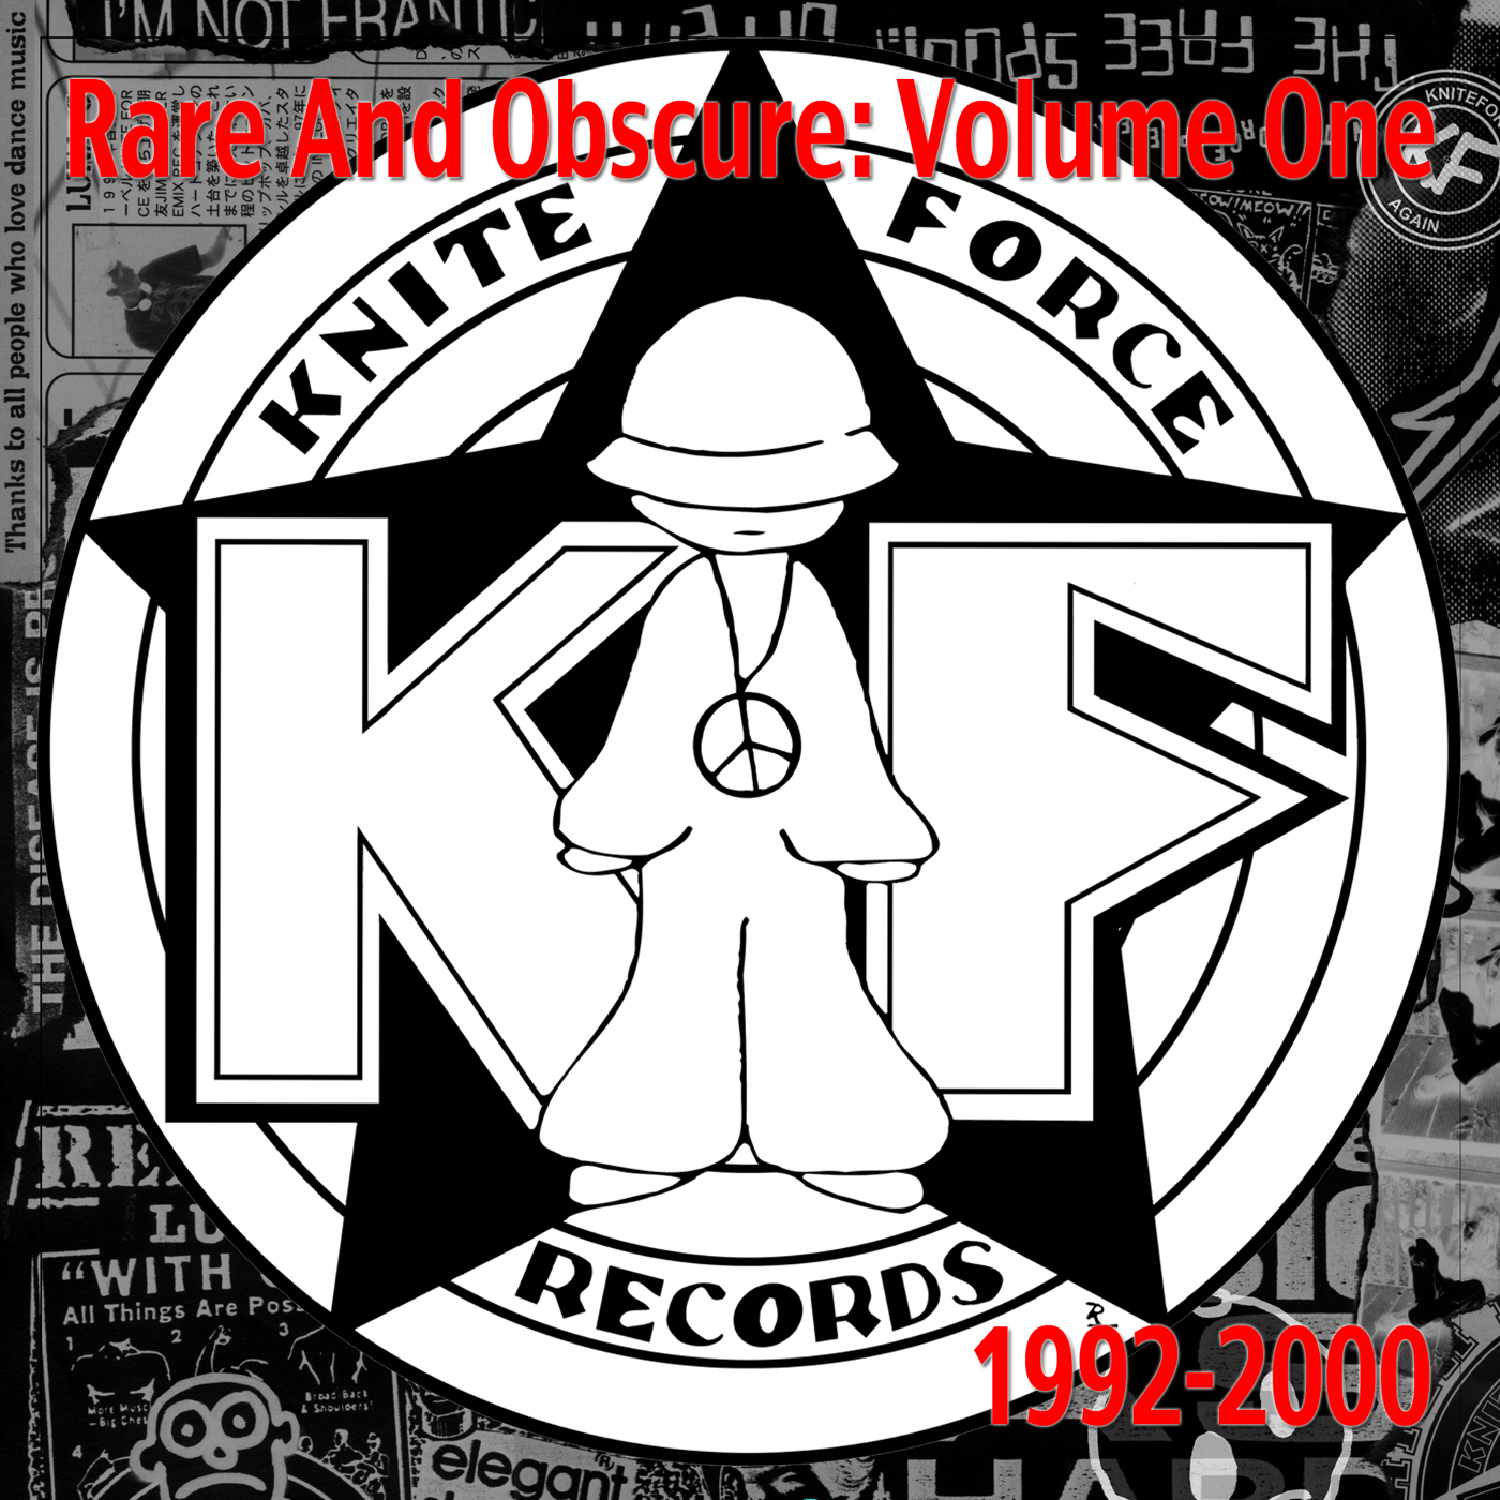 [KFLP012] Various - Rare And Obscure Volume 1 (Digital Only)